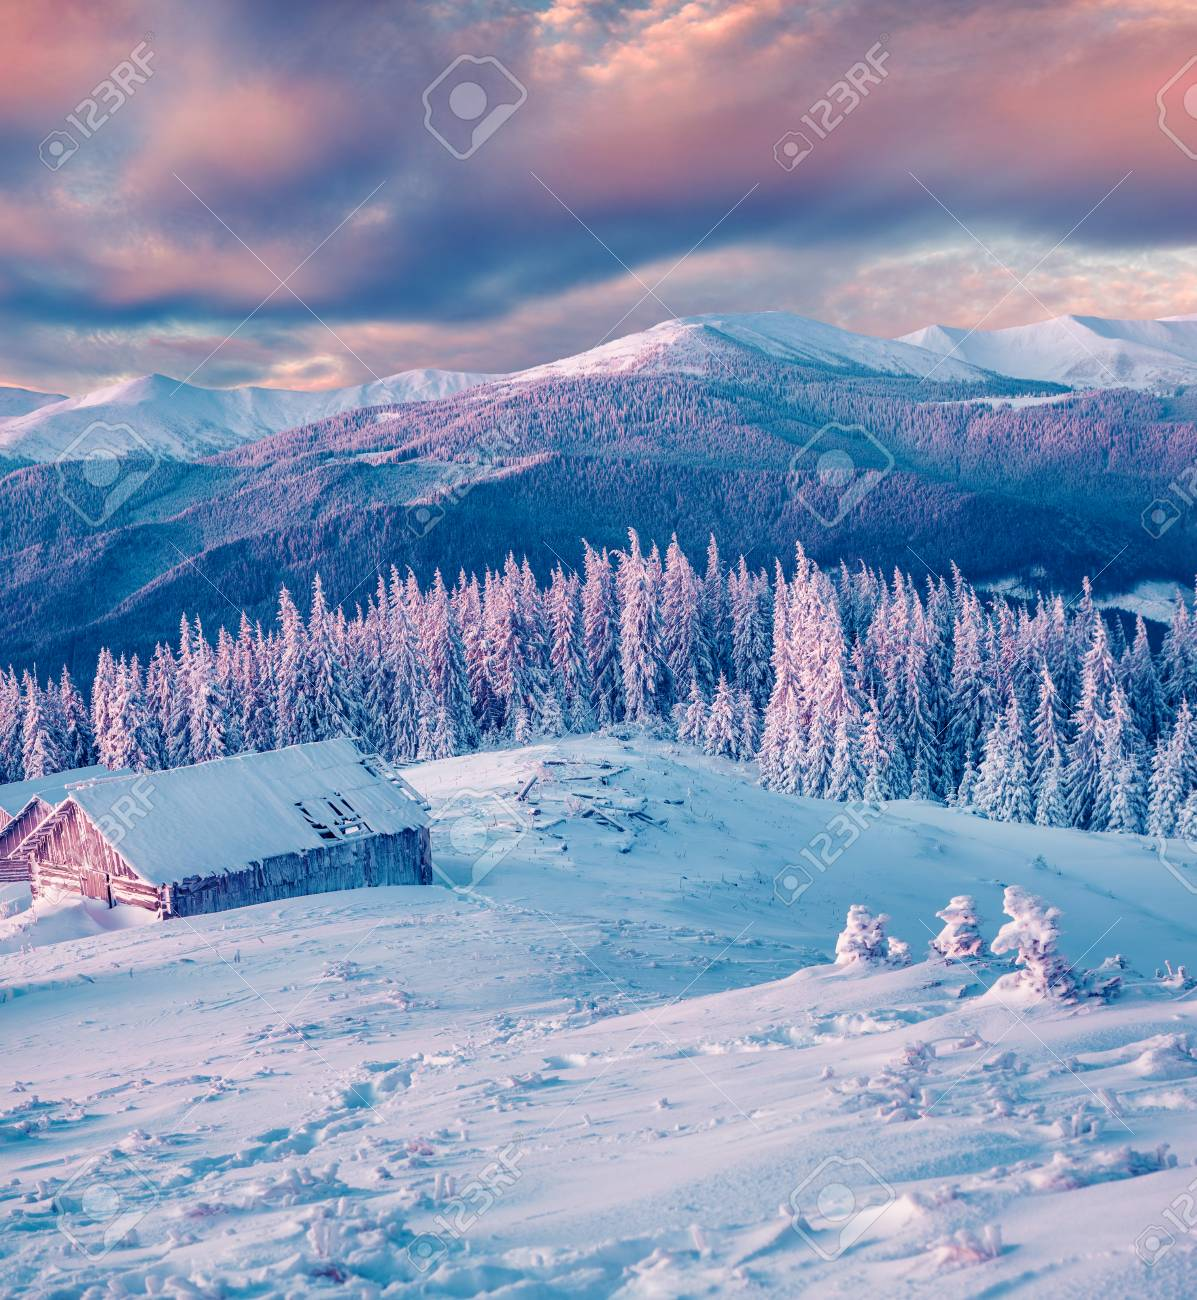 Magnificent winter sunset in mountain forest with snow covered fir trees. Colorful outdoor scene, Happy New Year celebration concept. Artistic style post processed photo. - 116551569